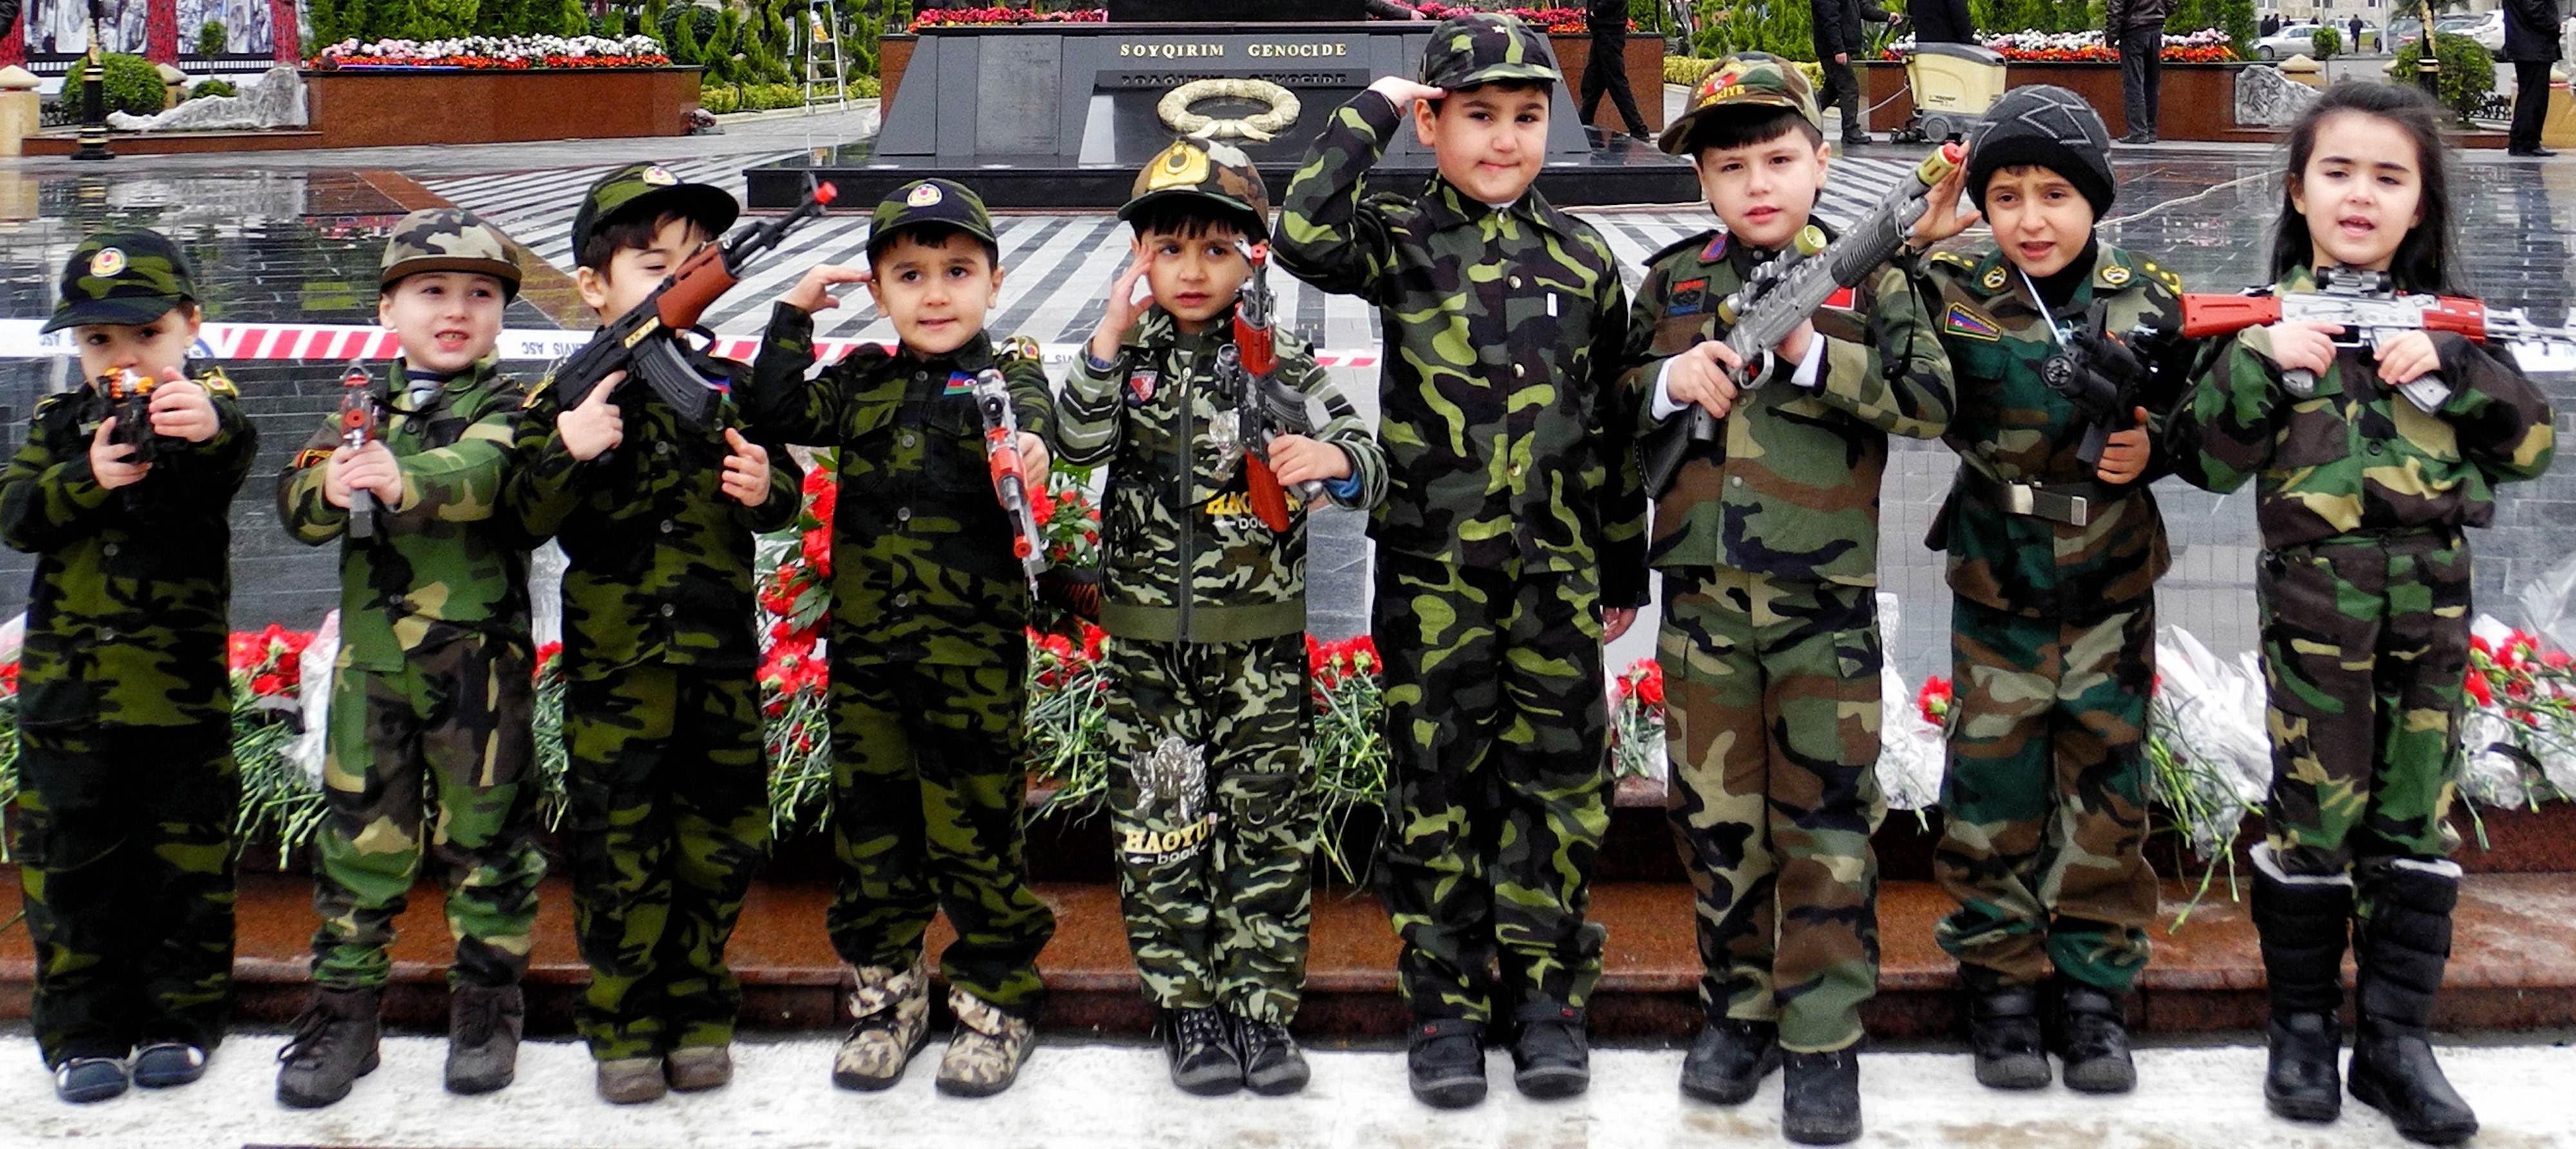 "Wearing army-style camouflage costumes little Azerbaijanis take part in a ceremony to mark the 21st anniversary of what Azerbaijan refers to as the ""Khojaly Massacre"" at a monument to the Khojaly  victims in Baku, the capital of Azerbaijan. Azerbaijani authorities say 613 people died when Armenian troops attacked the village of Khojaly in Karabakh in 1992 during Nagorny-Karabakh conflict in what Baku has described as ""genocide"", a term fiercely rejected by Yerevan.?Photo by AFP"